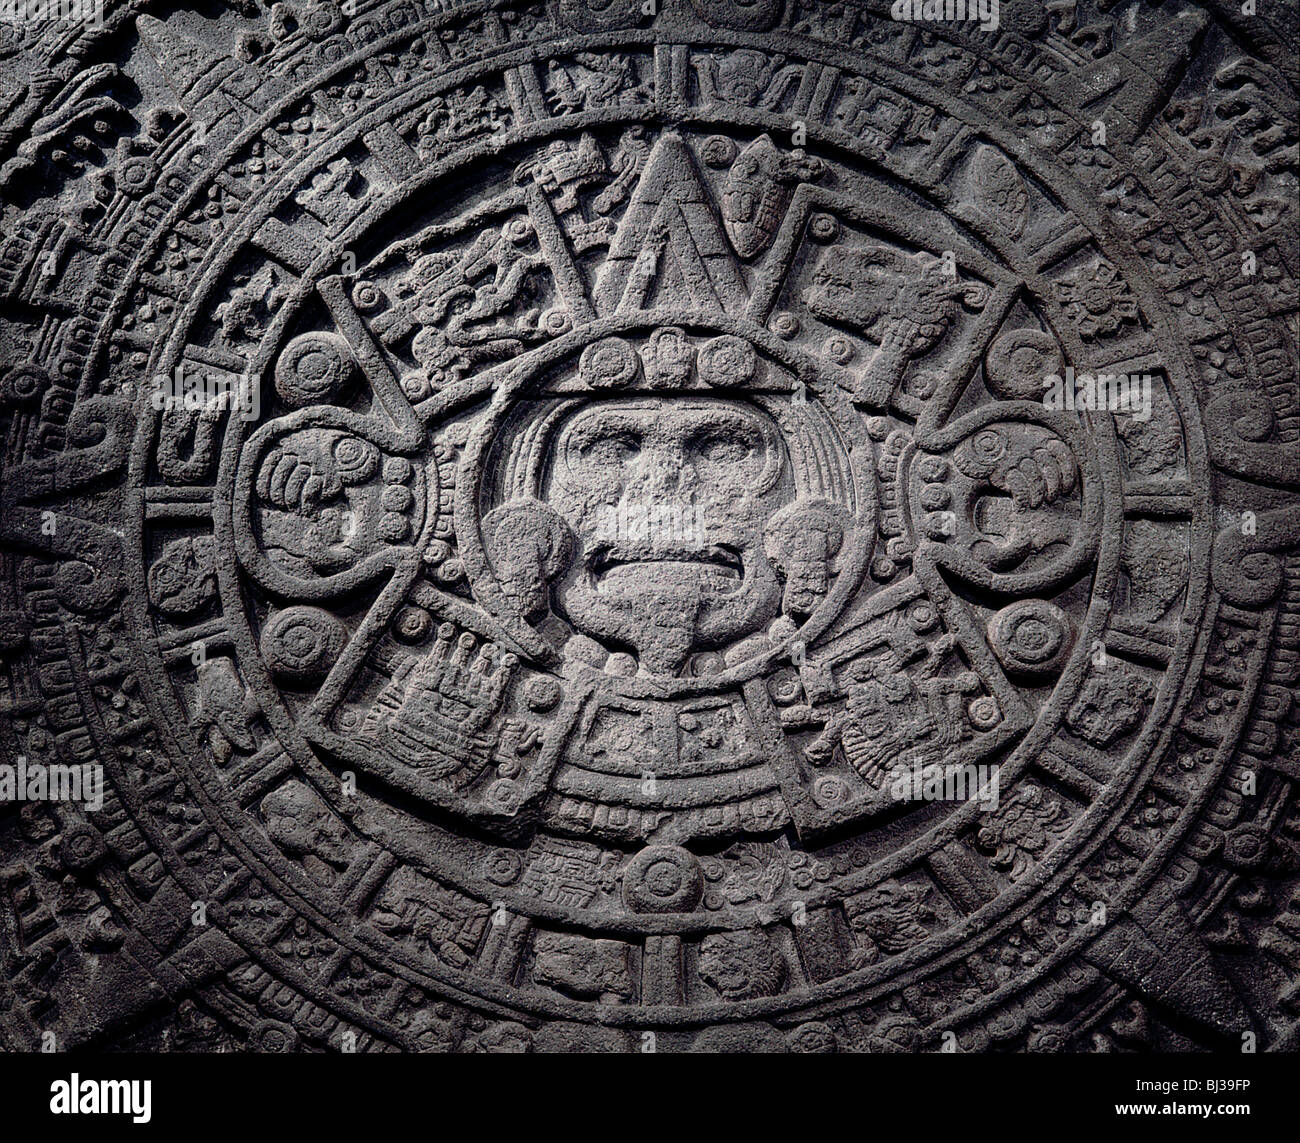 Aztec calendar stone, Mexico, Late Postclassic period, c1200-1521. Artist: Werner Forman Stock Photo